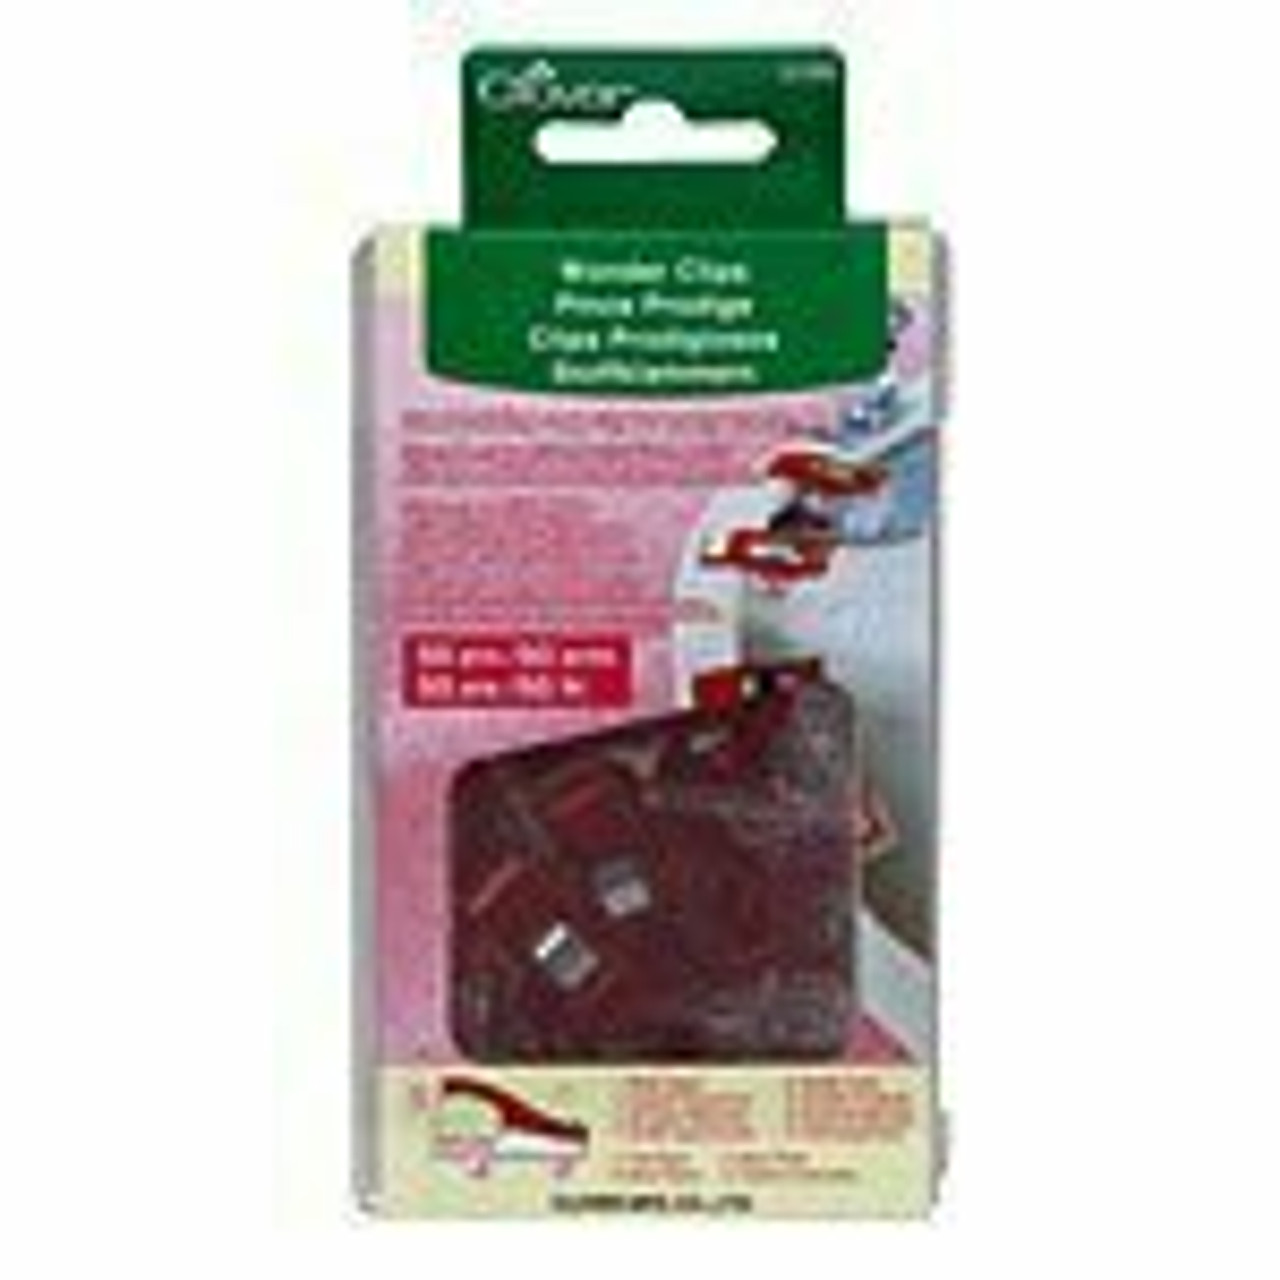 Clover Wonderclips - 50 pack